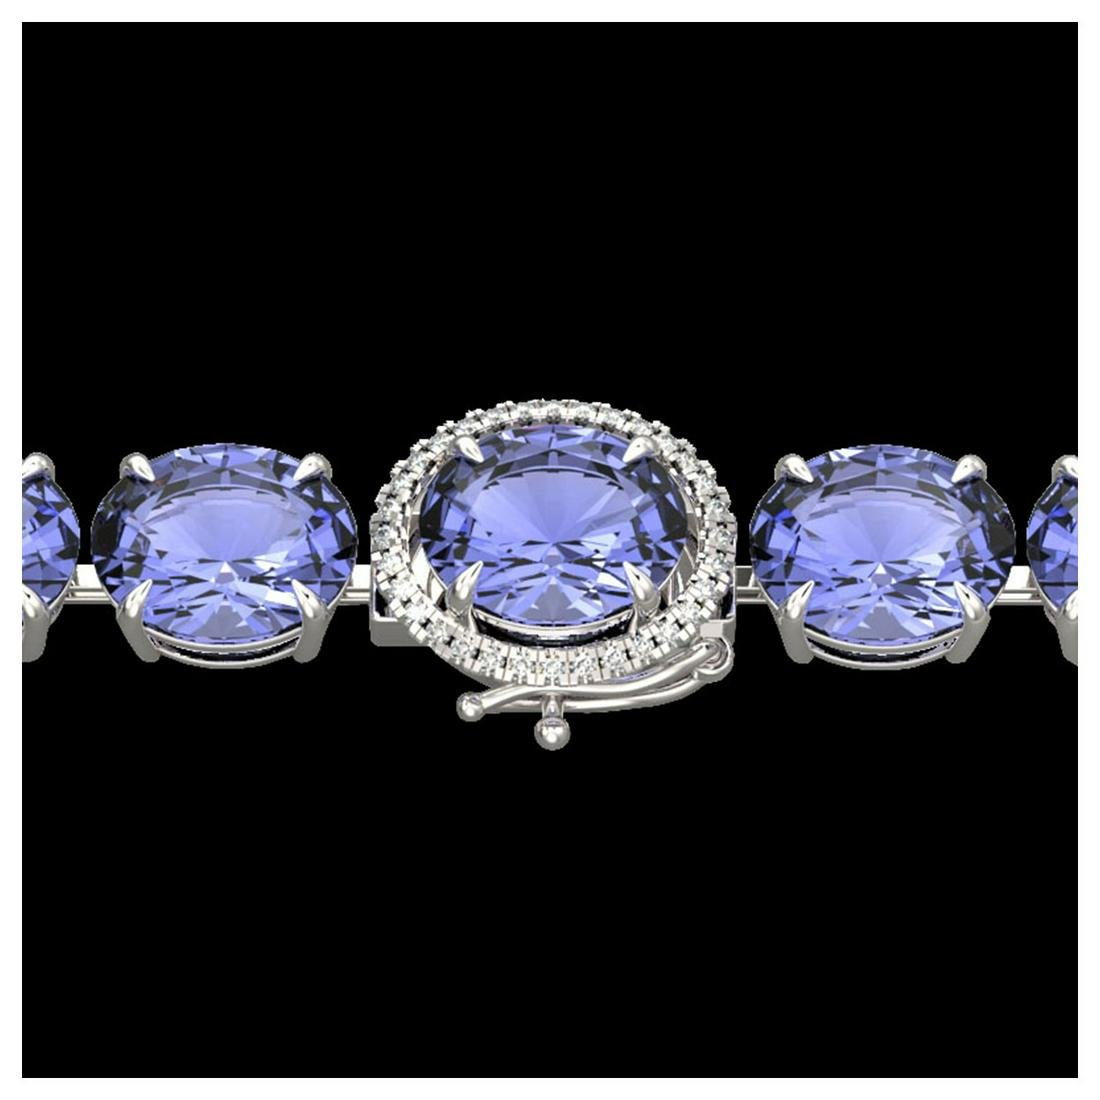 75 ctw Tanzanite & Diamond Bracelet 14K White Gold -